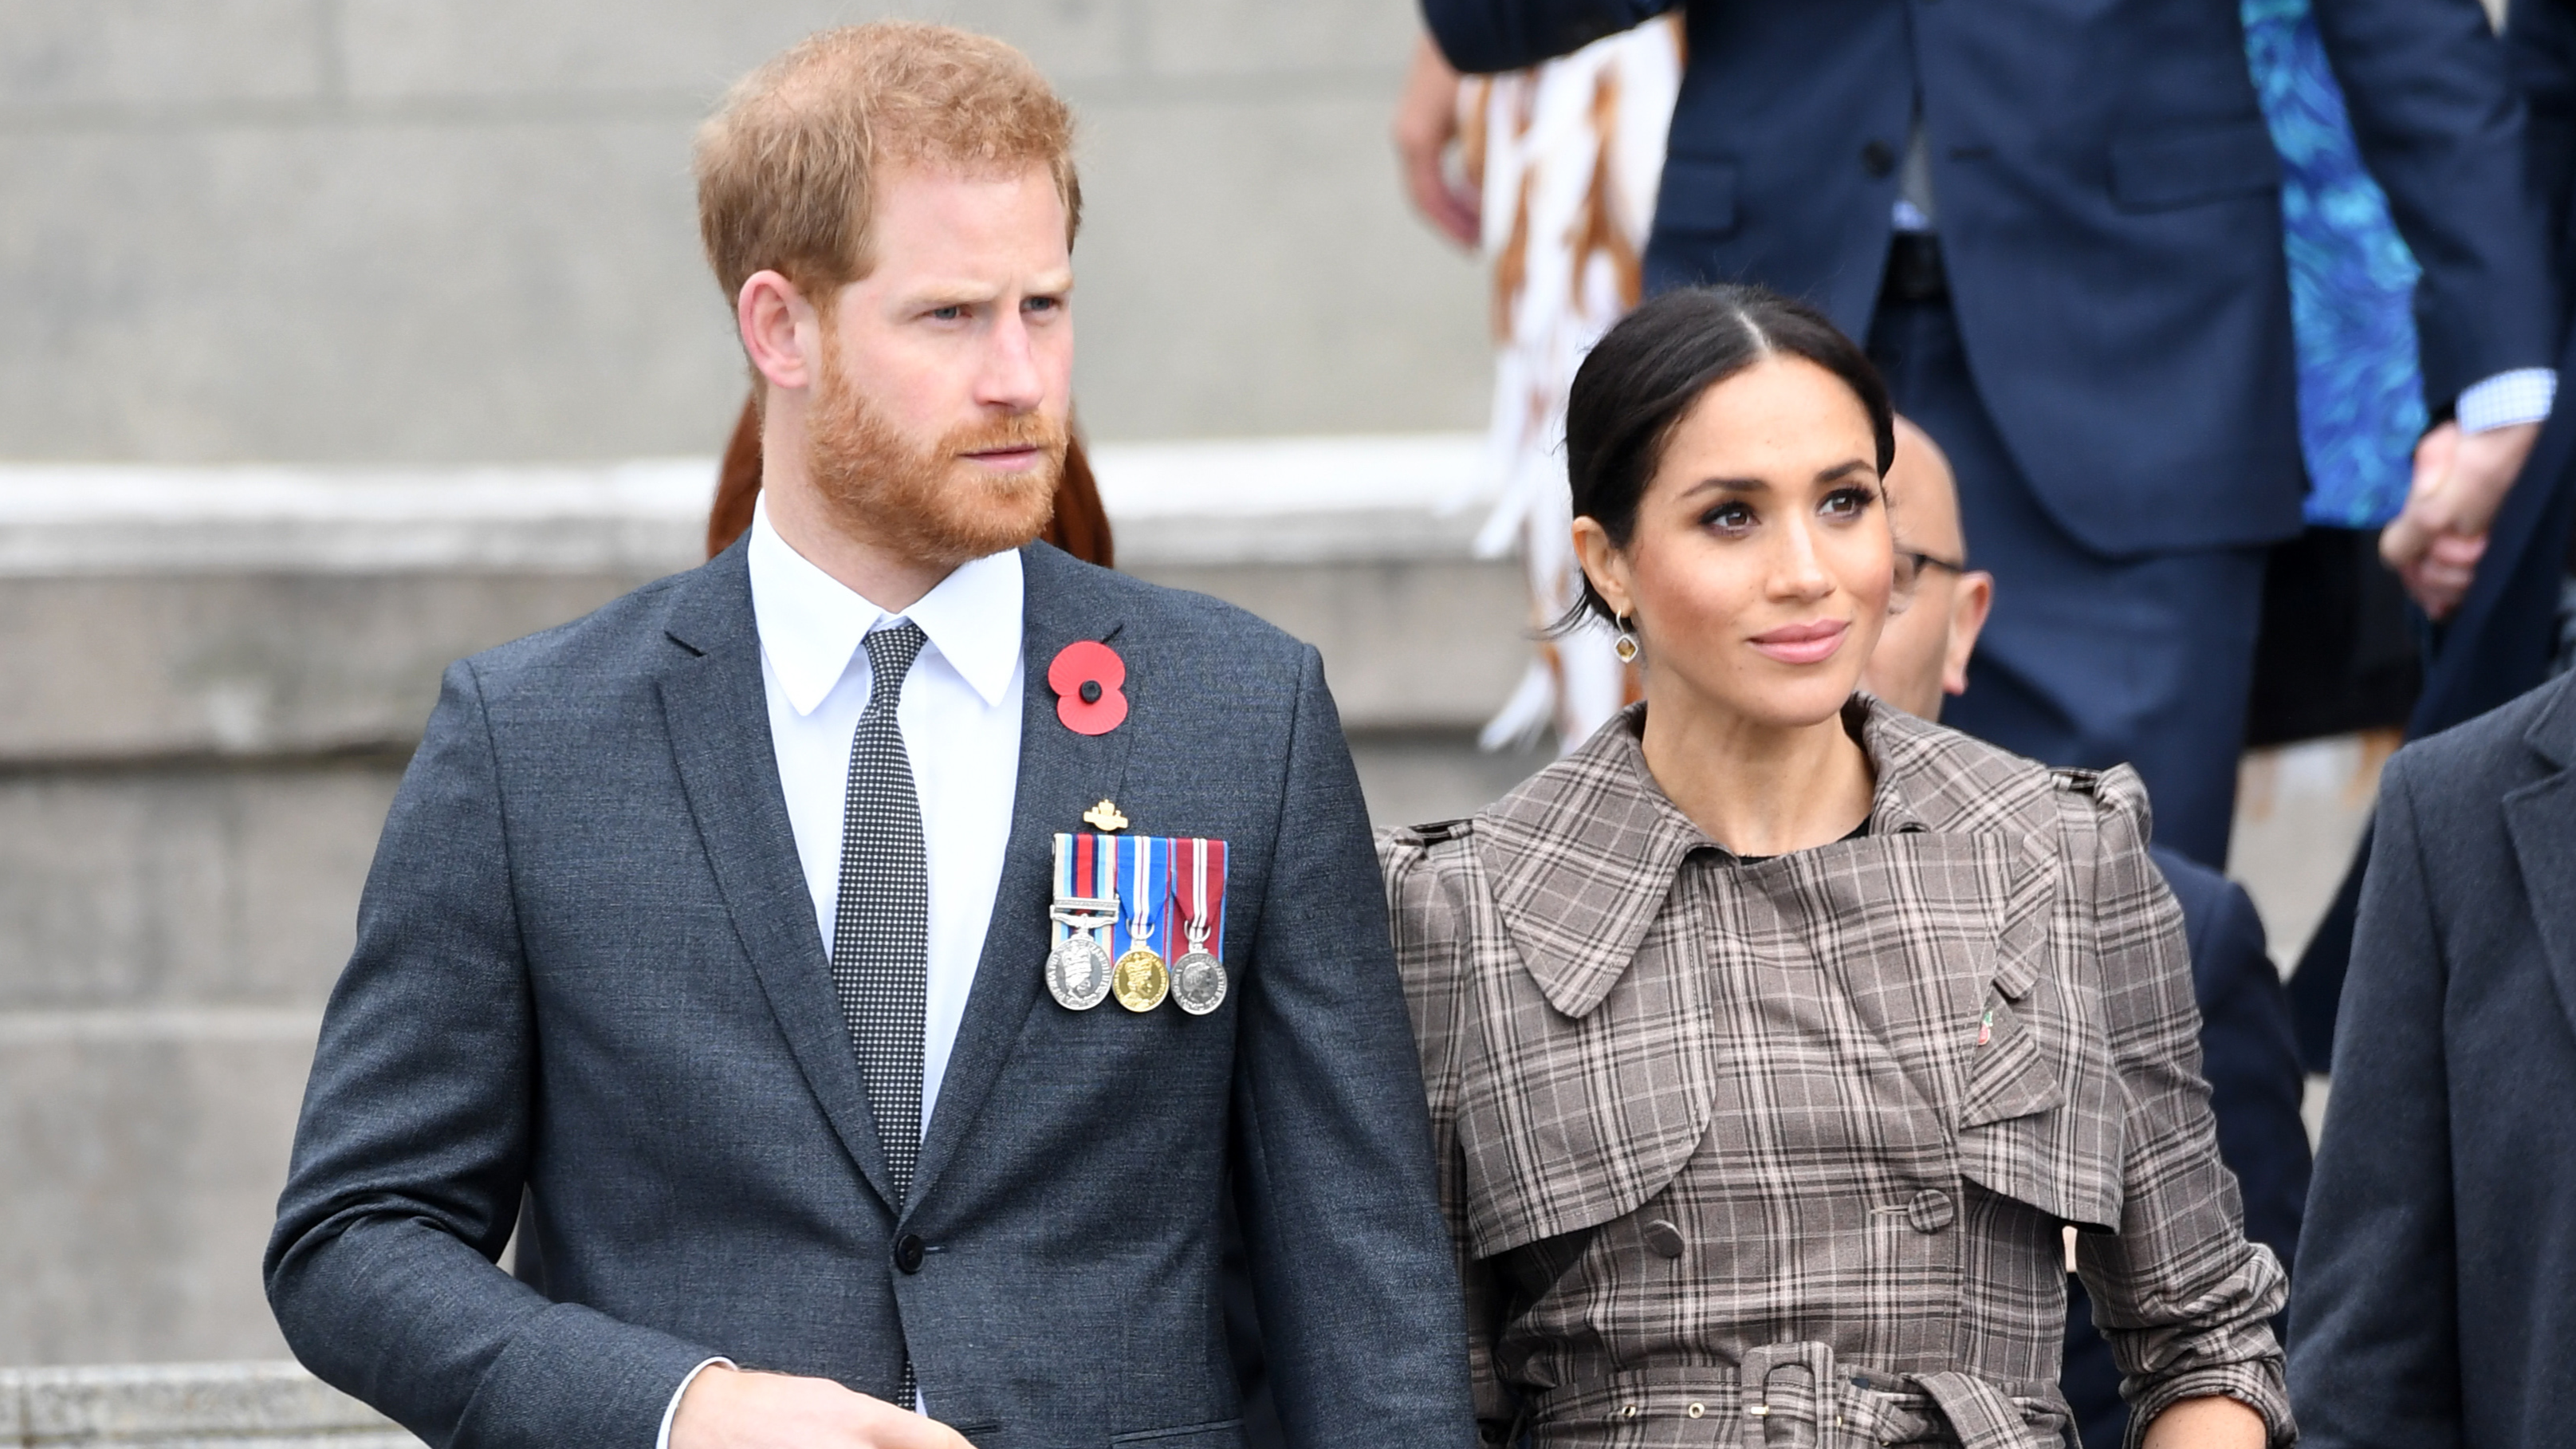 Meghan Markle Wore A £38 Maternity Dress From ASOS During Trip To New Zealand